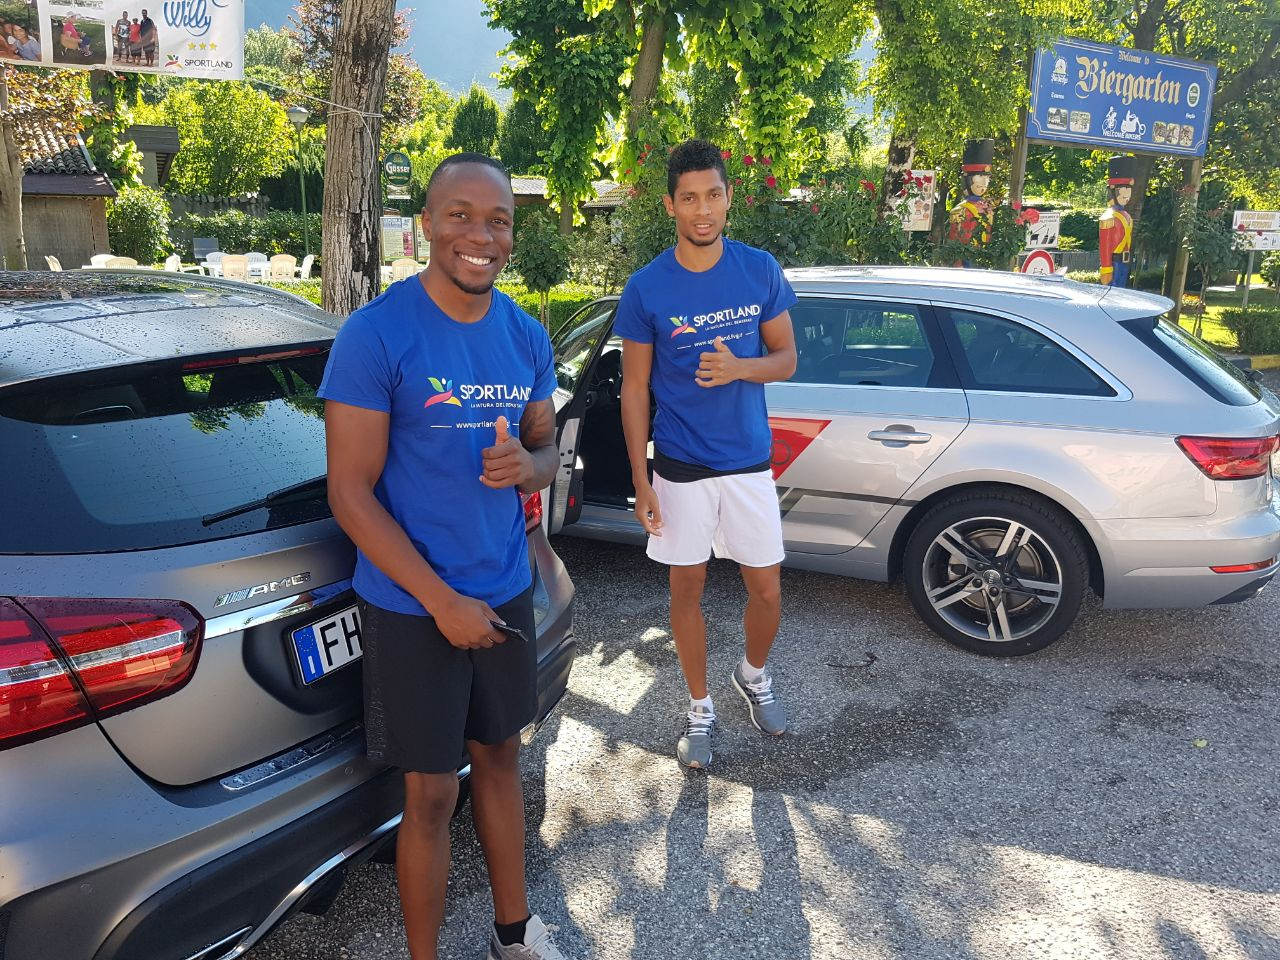 Wayde and Akani making use of their sponsored transport in Gemona